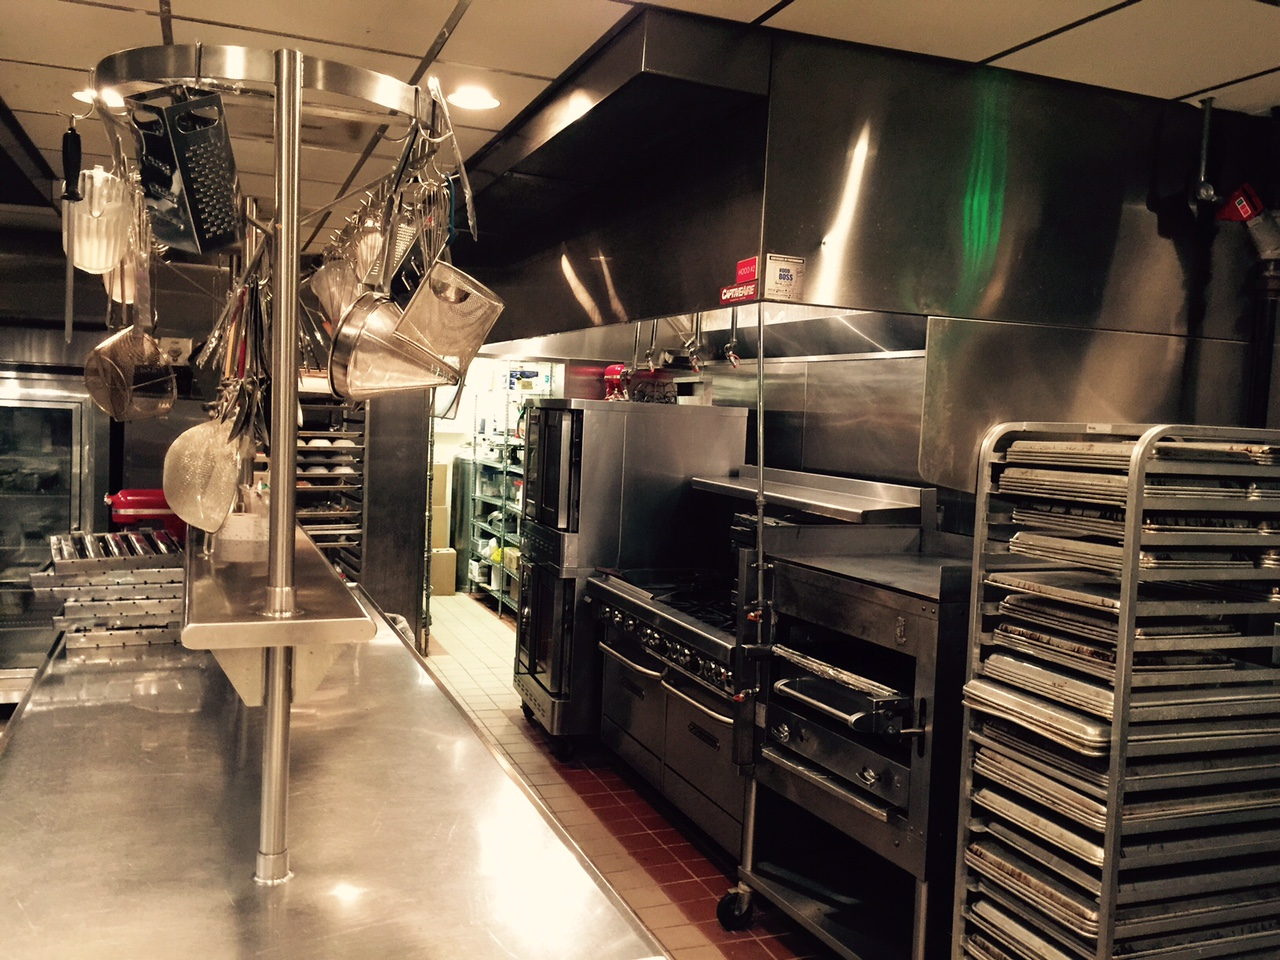 kitchen exhaust systems range hoods importance of cleaning system baffle